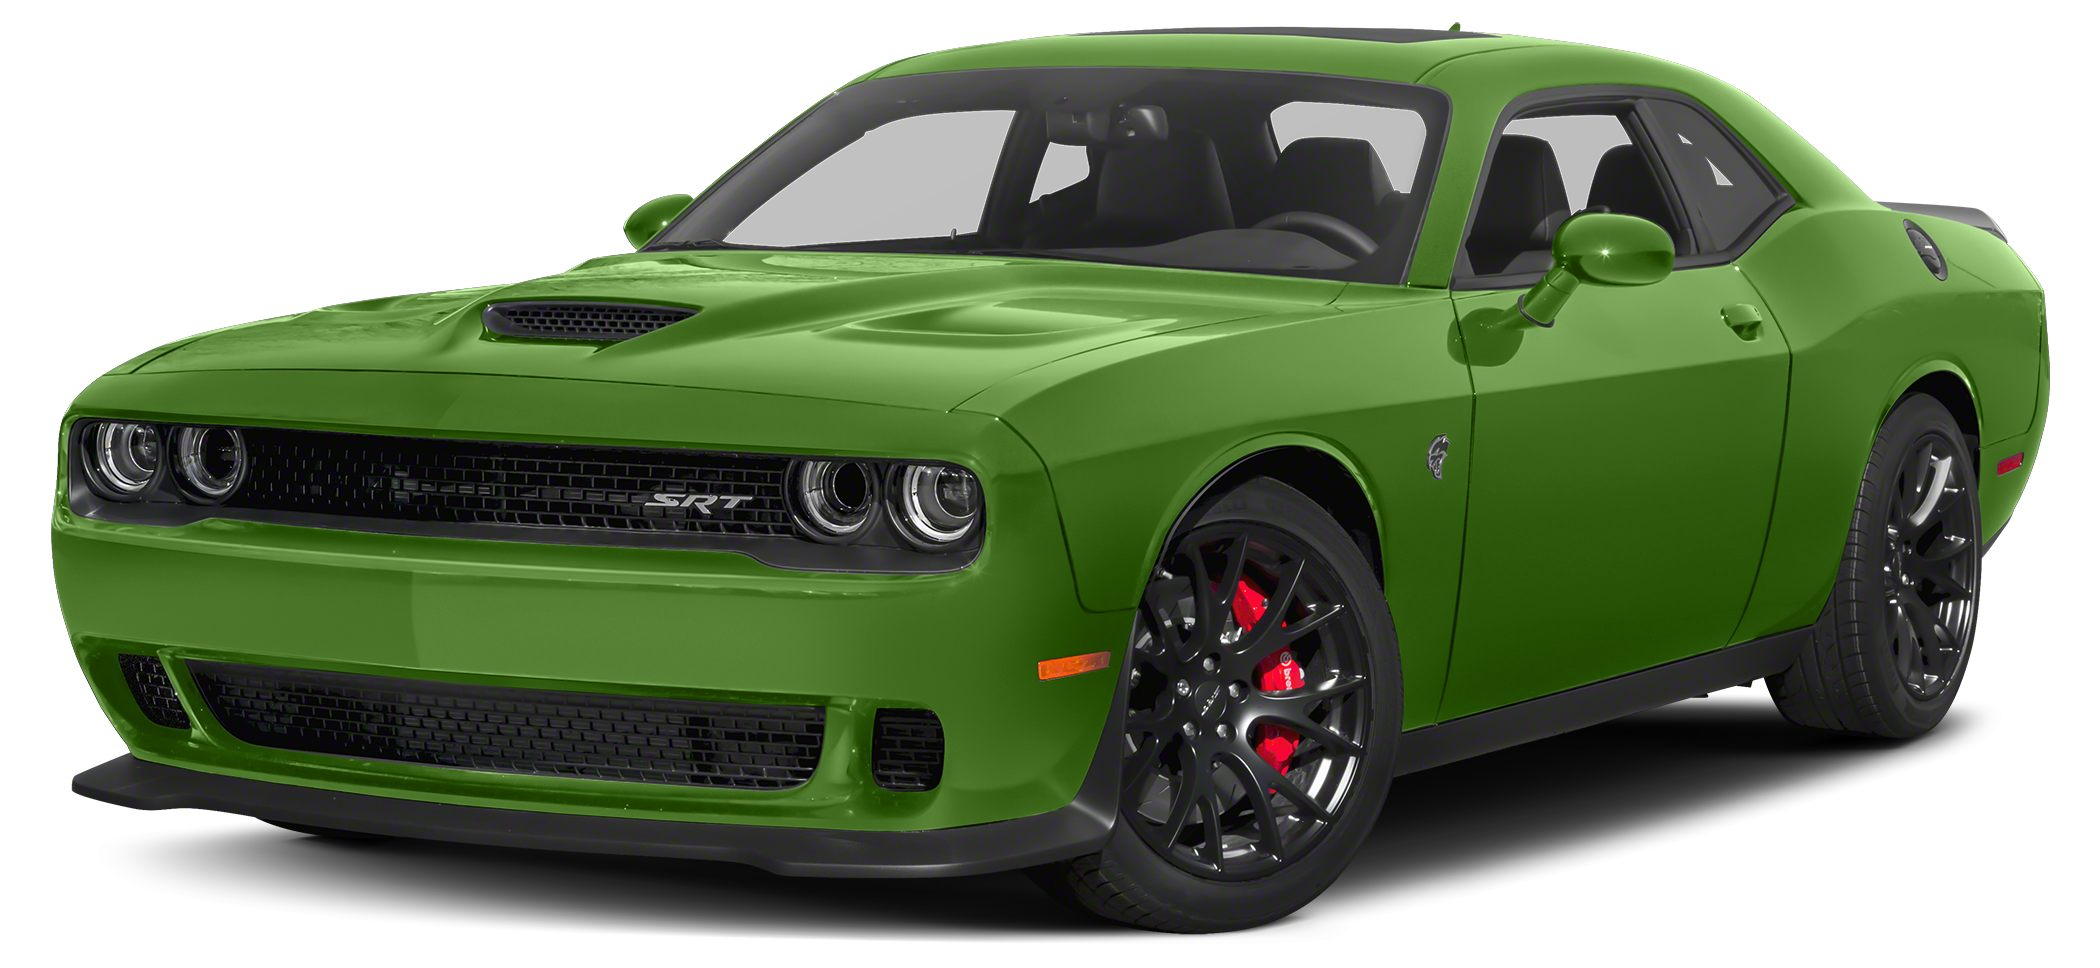 2015 Dodge Challenger SRT Hellcat This outstanding example of a 2015 Dodge Challenger 2dr Cpe SRT